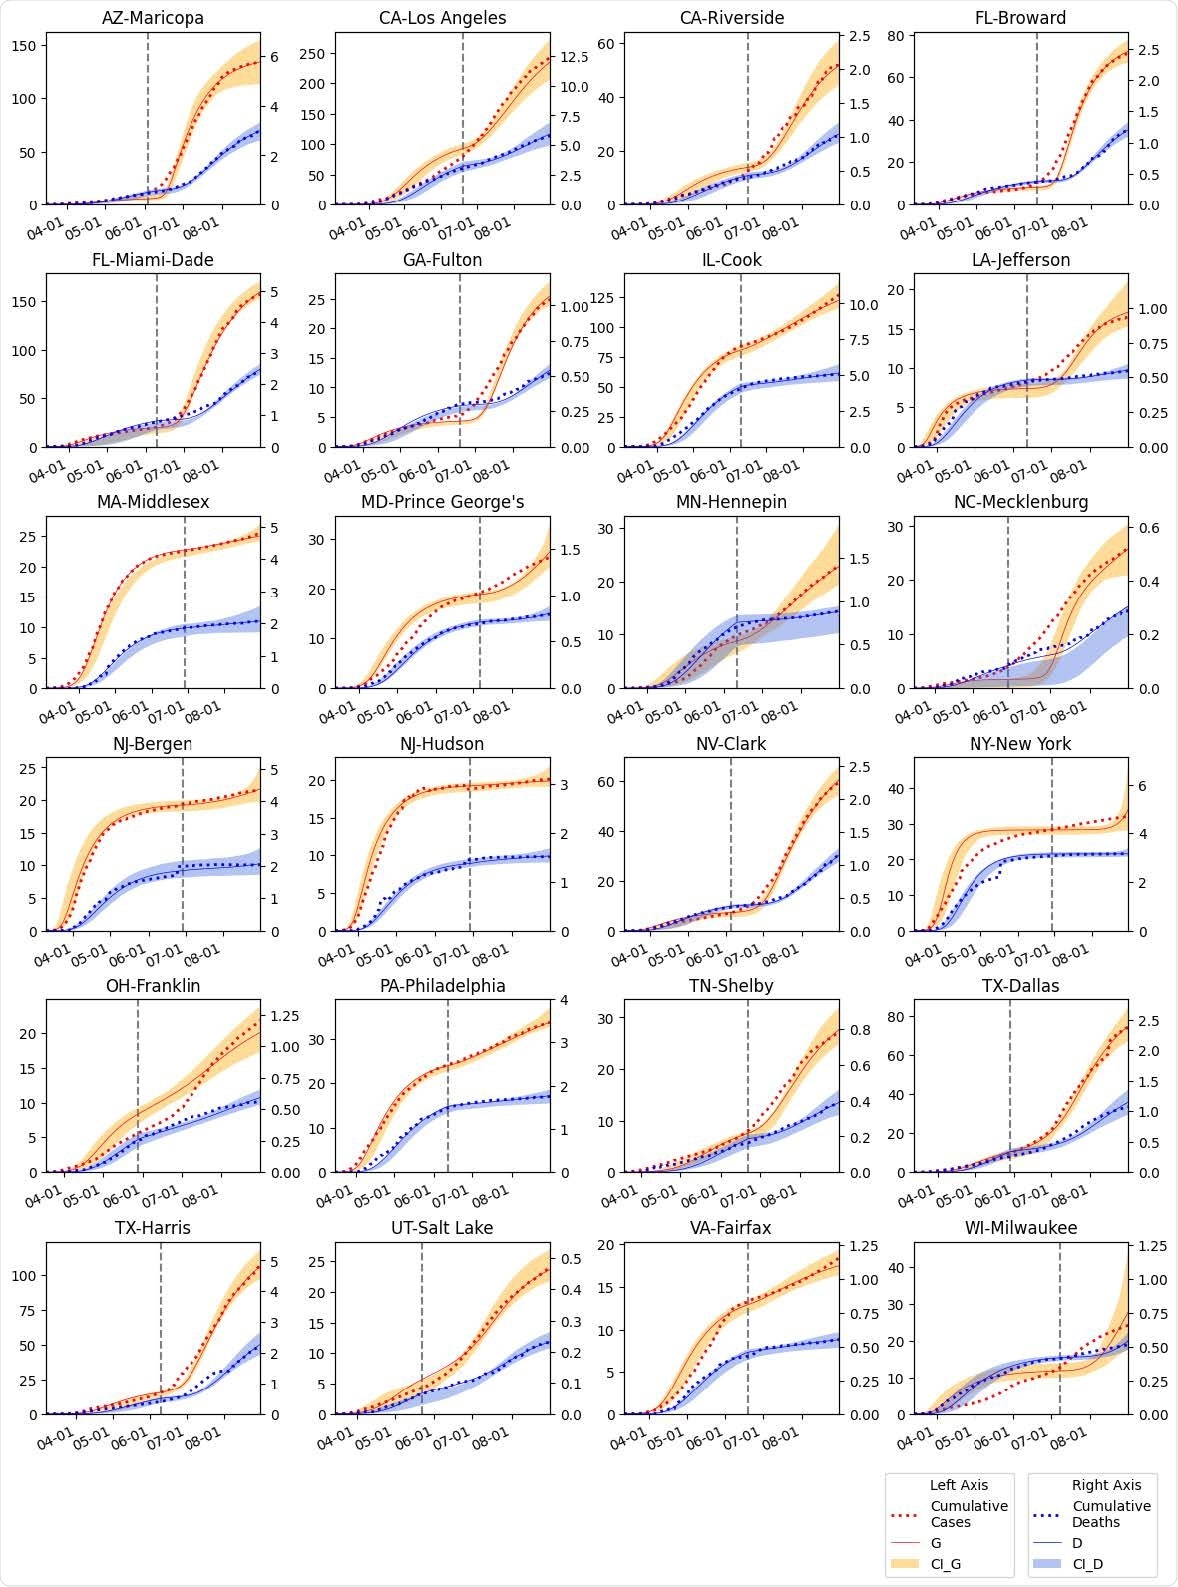 The SIR-SD-L model fitted for 24 US counties. Cumulative infection numbers (G) and deaths (D) are modeled for each of the counties. Range of intervals (95% CI) are illustrated for both G and D. The vertical dotted line represents the reopen date for each county.